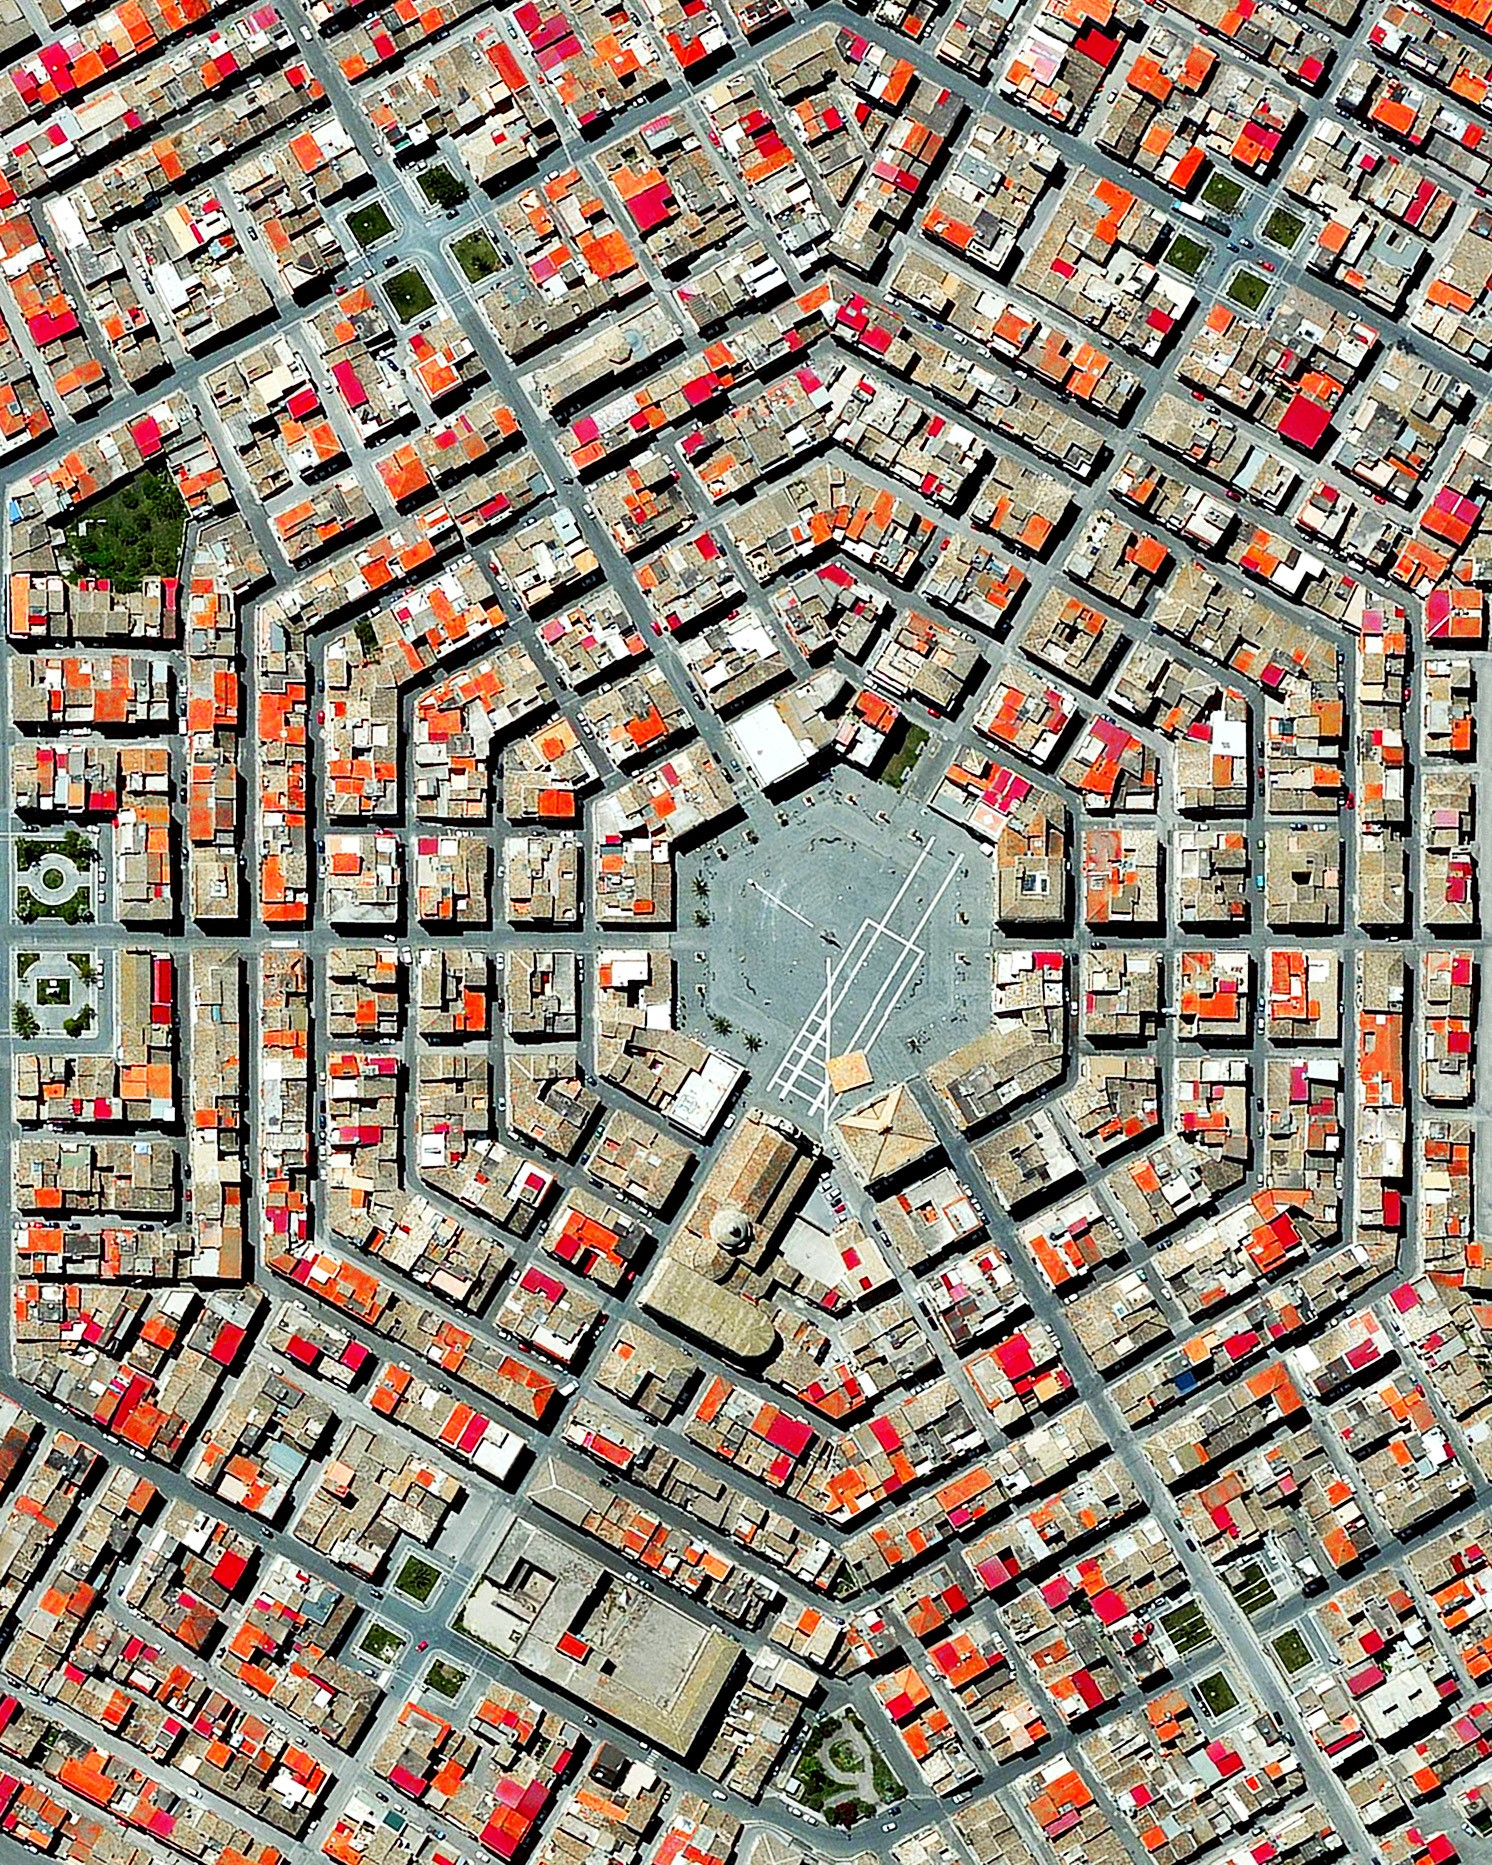 """Grammichele is located on the island of Sicily in southern Italy. The town was constructed in 1693 with a distinctive hexagonal street plan after an earthquake destroyed the nearby, old town of Occhialà.  37°12'53.0""""N 14°38'11.0""""E  Source imagery: DigitalGlobe"""